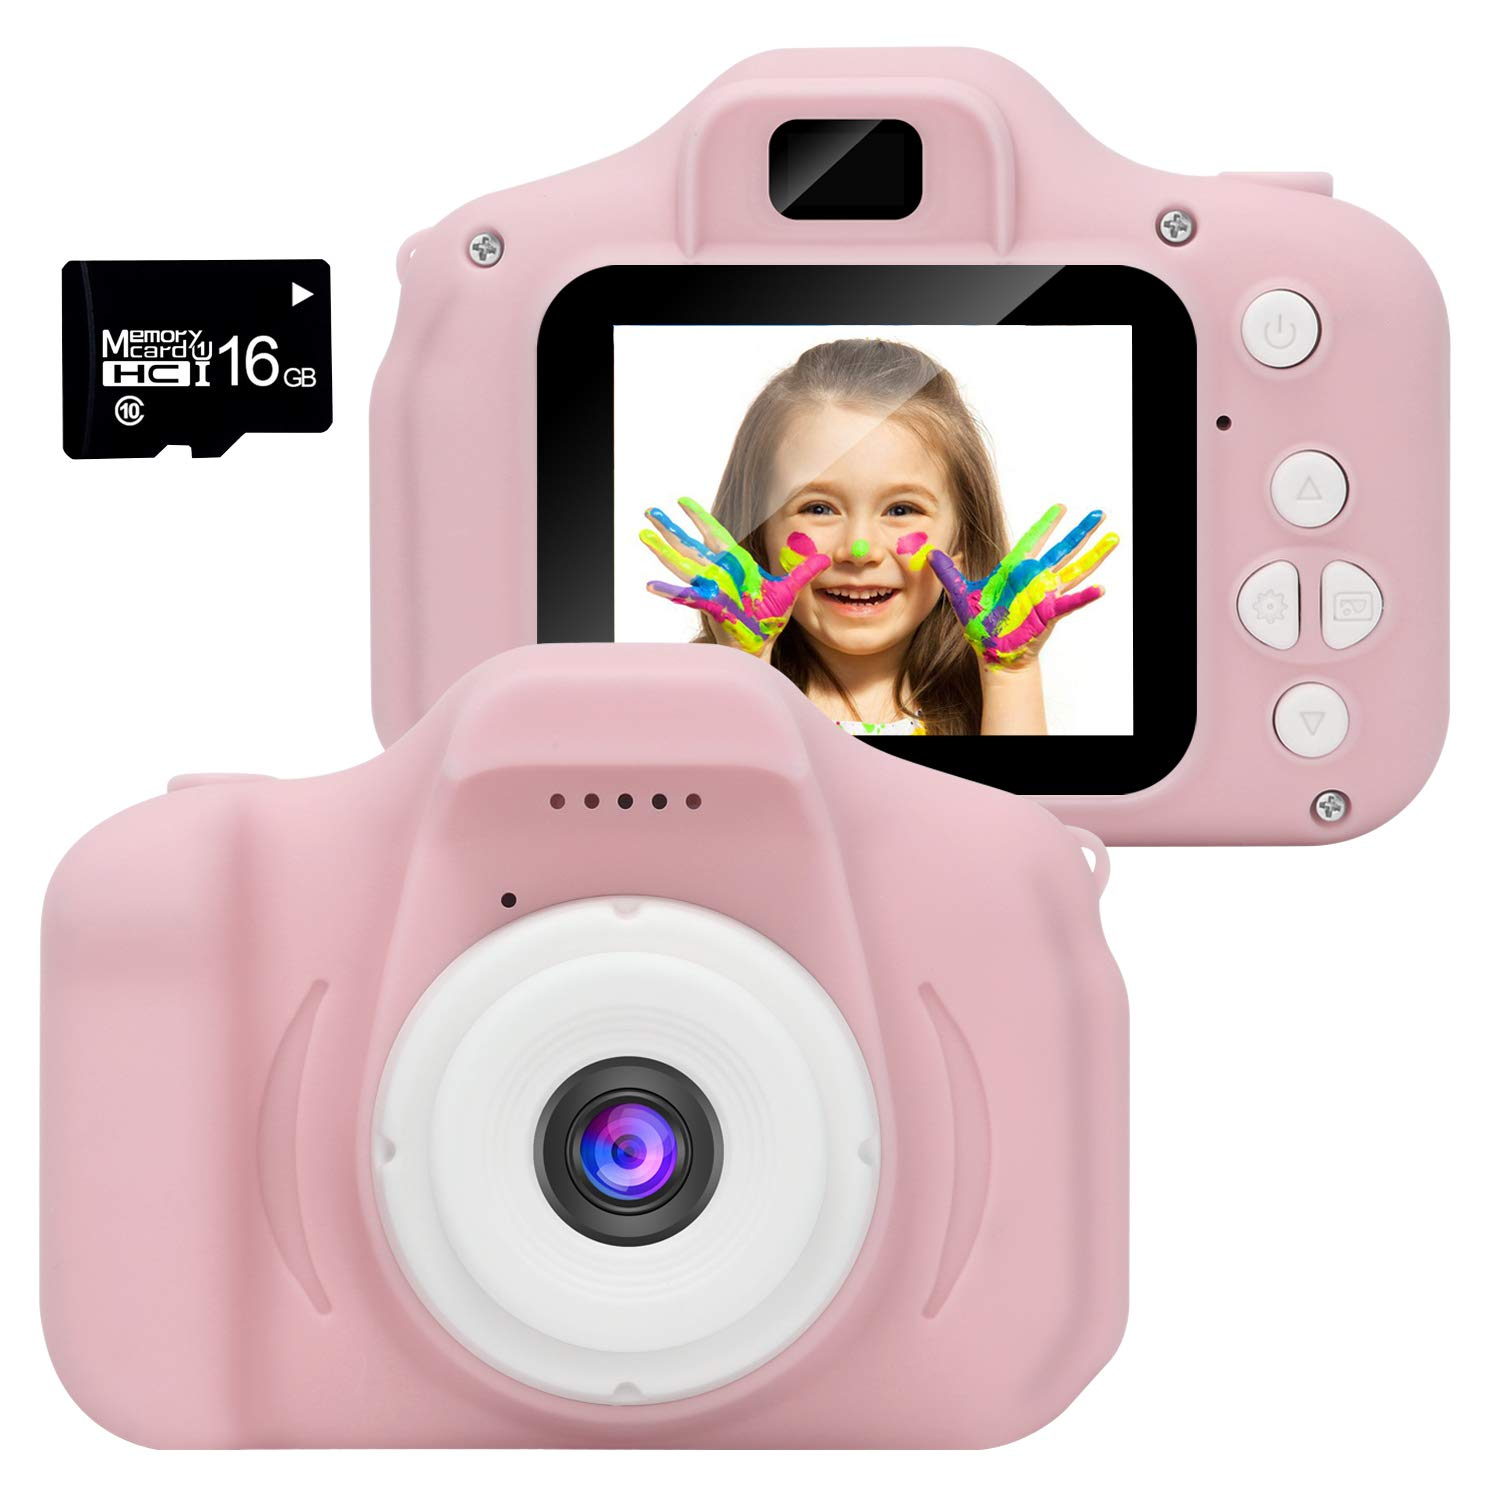 WABOLIN Kids Digital Video Camera for Girls Age 3-8 , Mini Pink Rechargeable Children Camera Shockproof 8MP HD Toddler Cameras Child Camcorder (16GB Memory Card Included) by WABOING (Image #1)